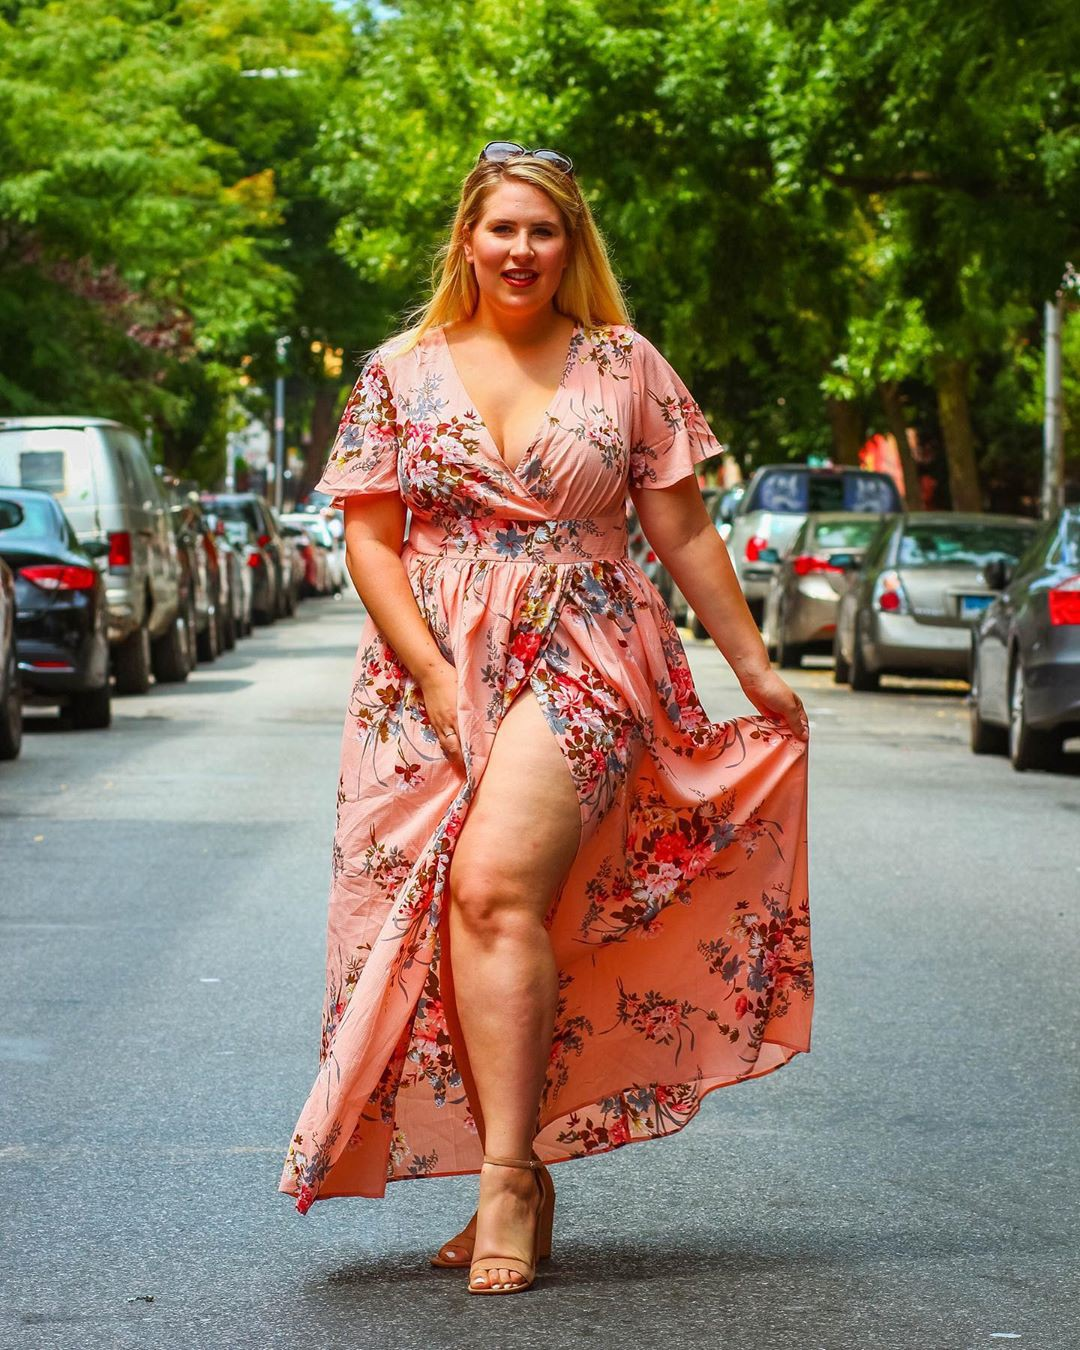 Street fashion tips for fashion model, Plus-size model